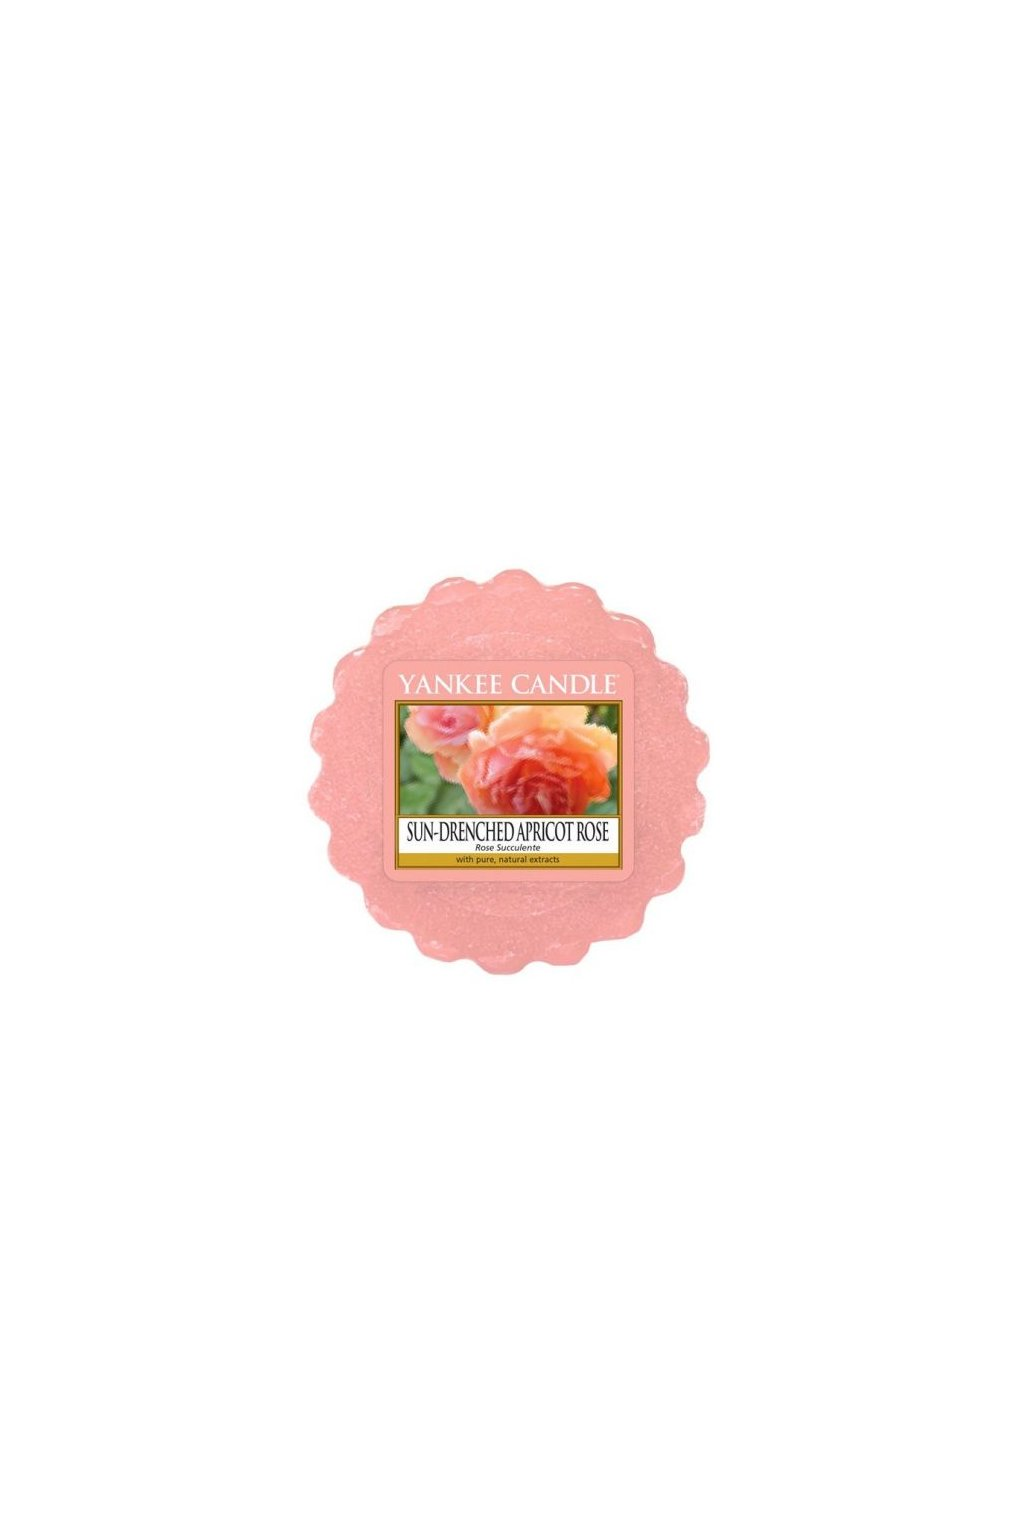 Sun Drenched Apricot Rose 22g